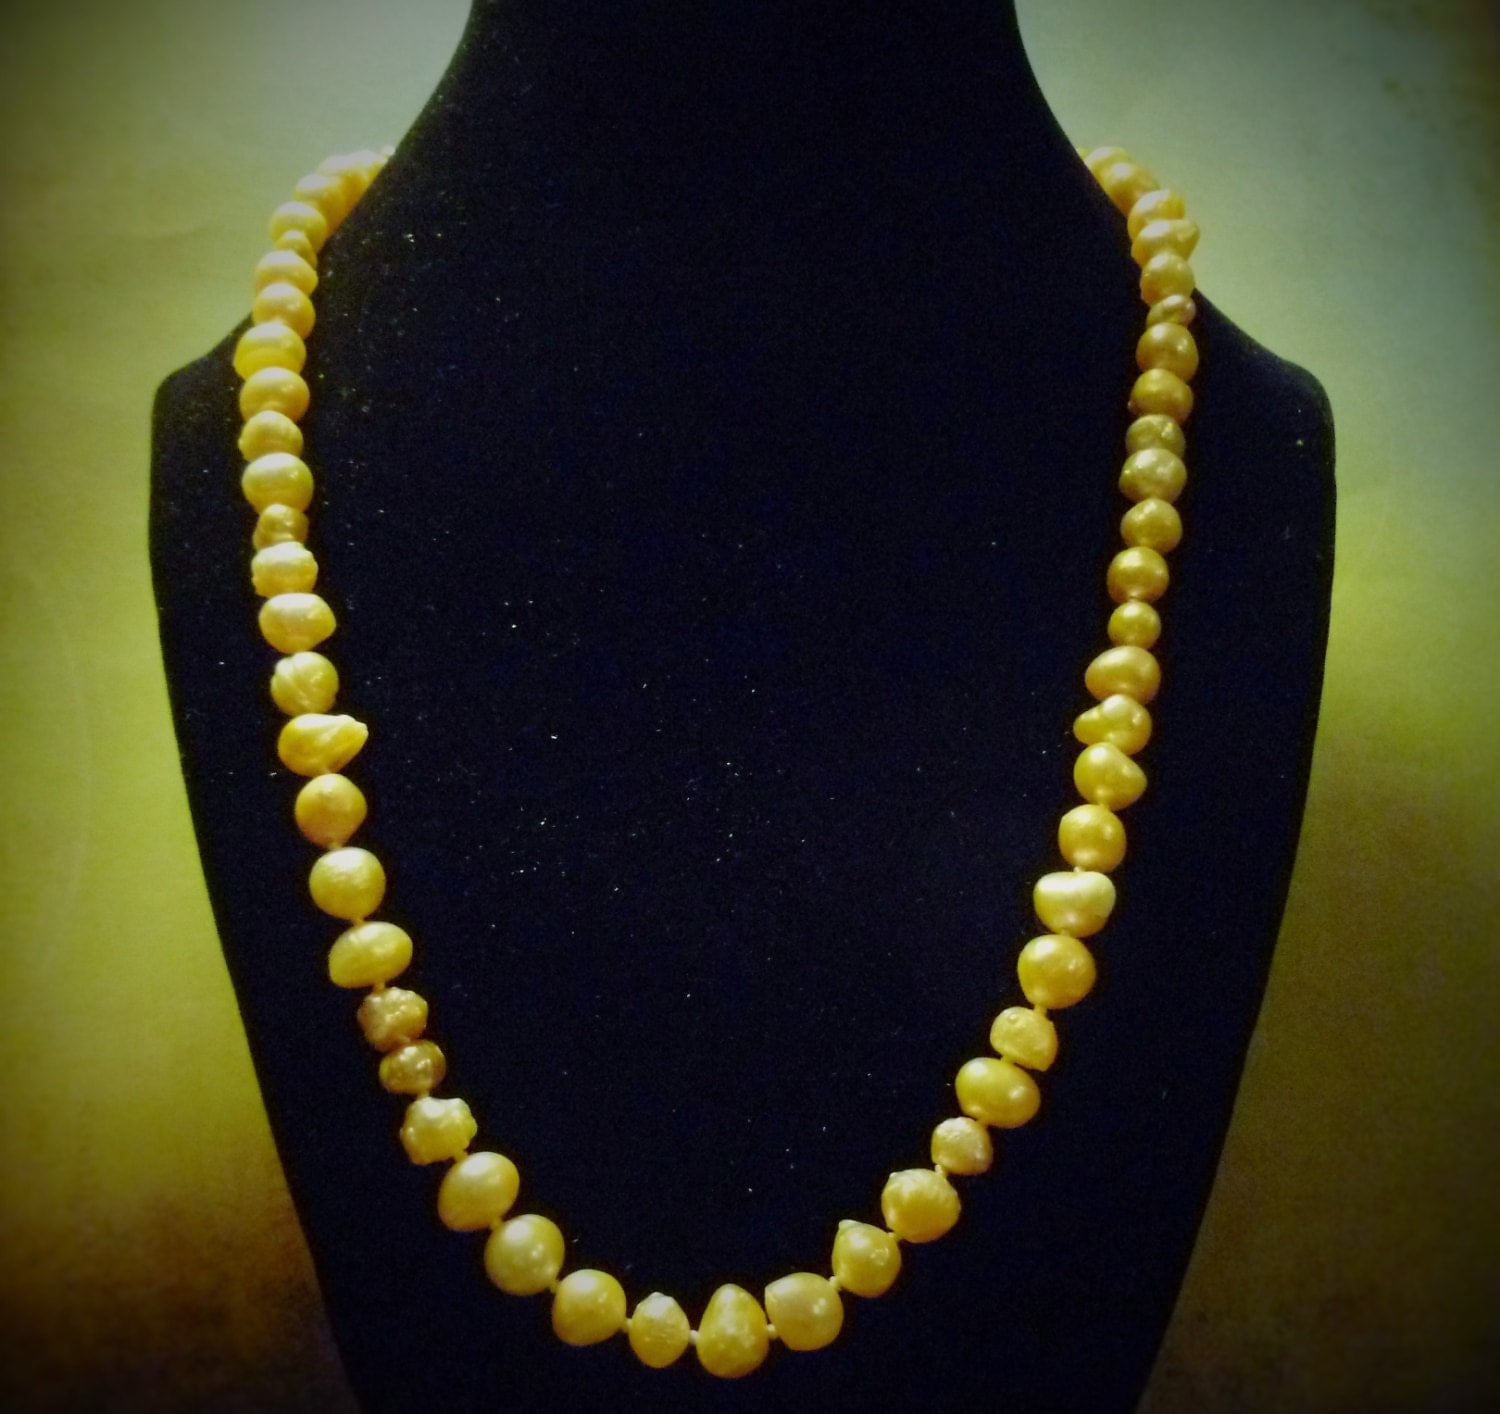 Wedding Pearls 22 Inches long with Nickle Free Clasp Peach Colored Hand Strung Fresh Water Pearls